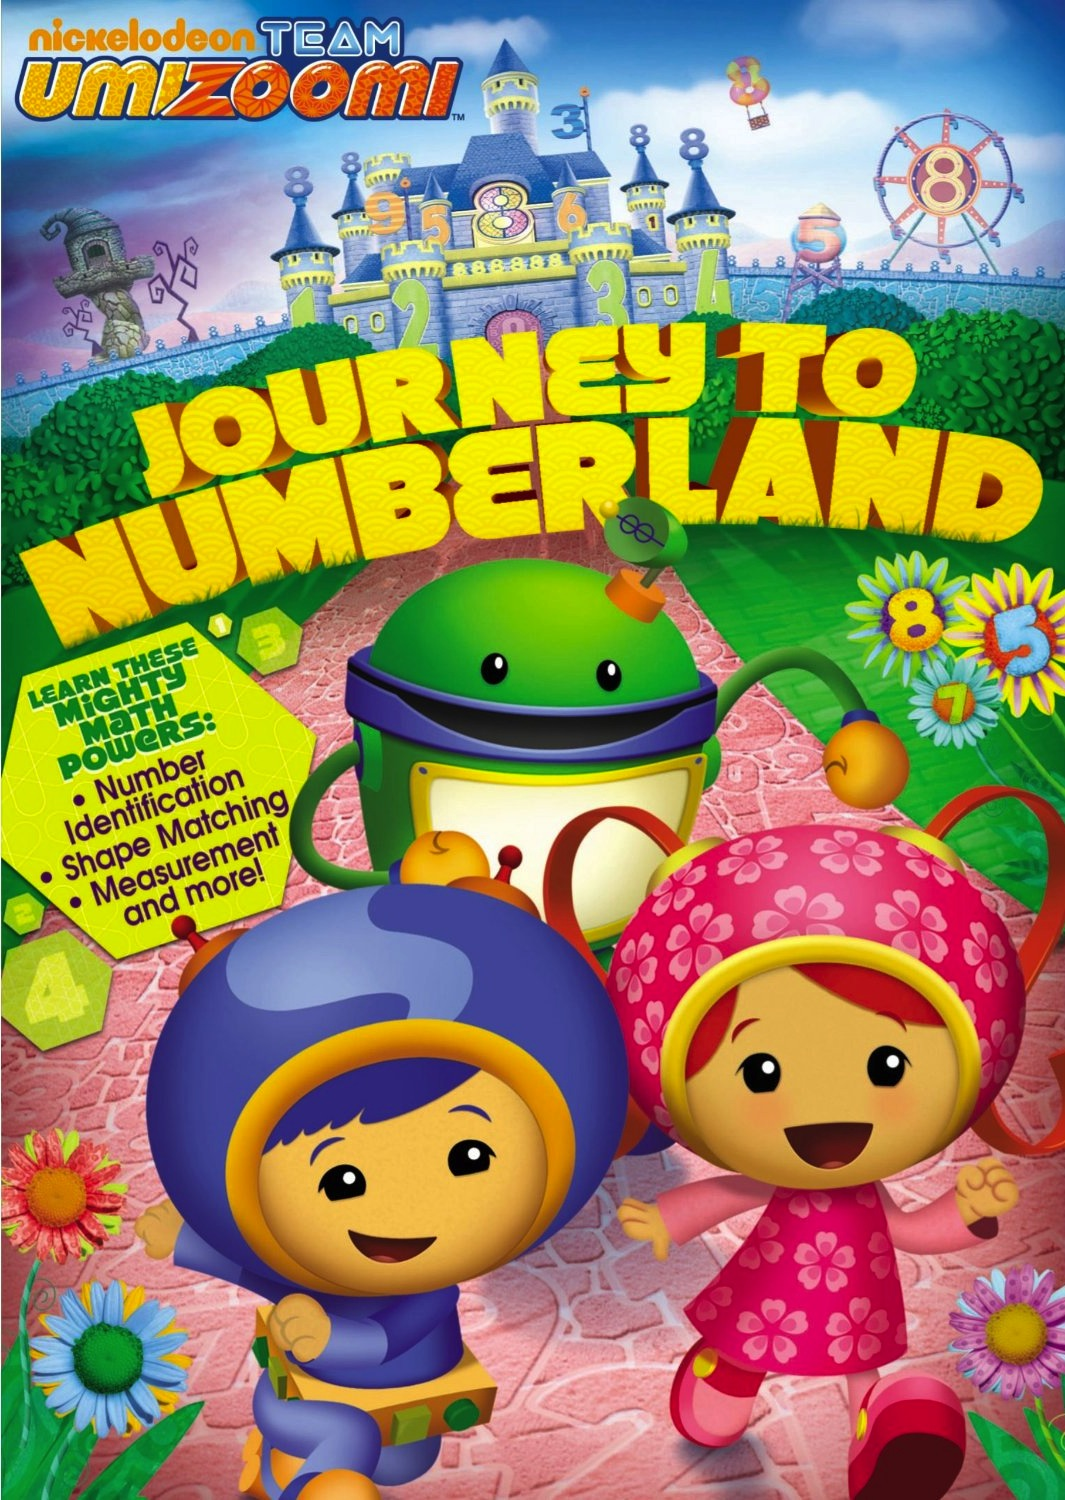 team umizoomi journey to numberland